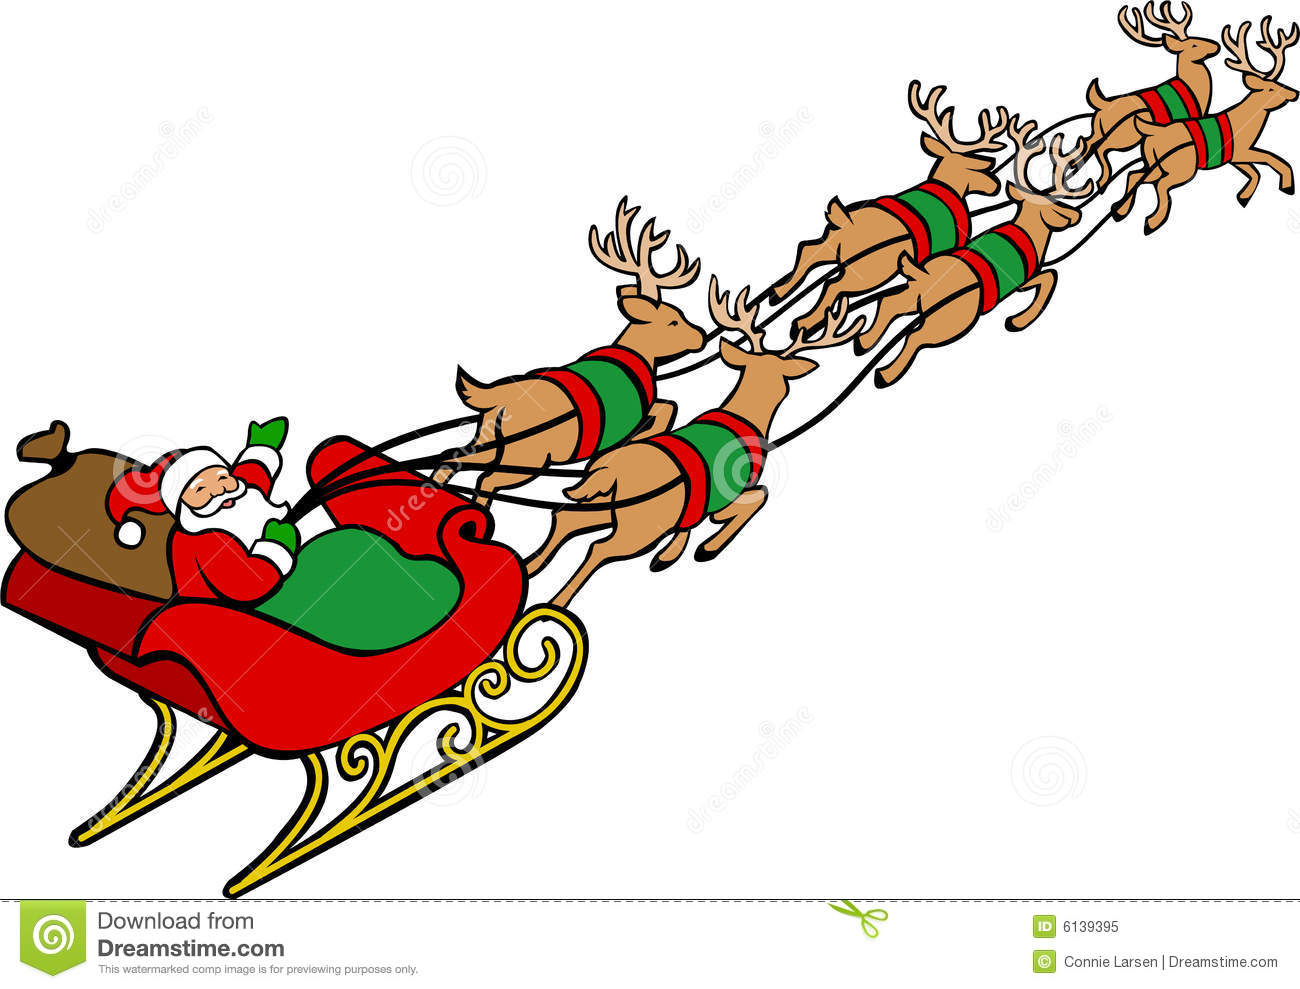 ... red-suited Christmas Santa Claus in a sleigh pulled by reindeer